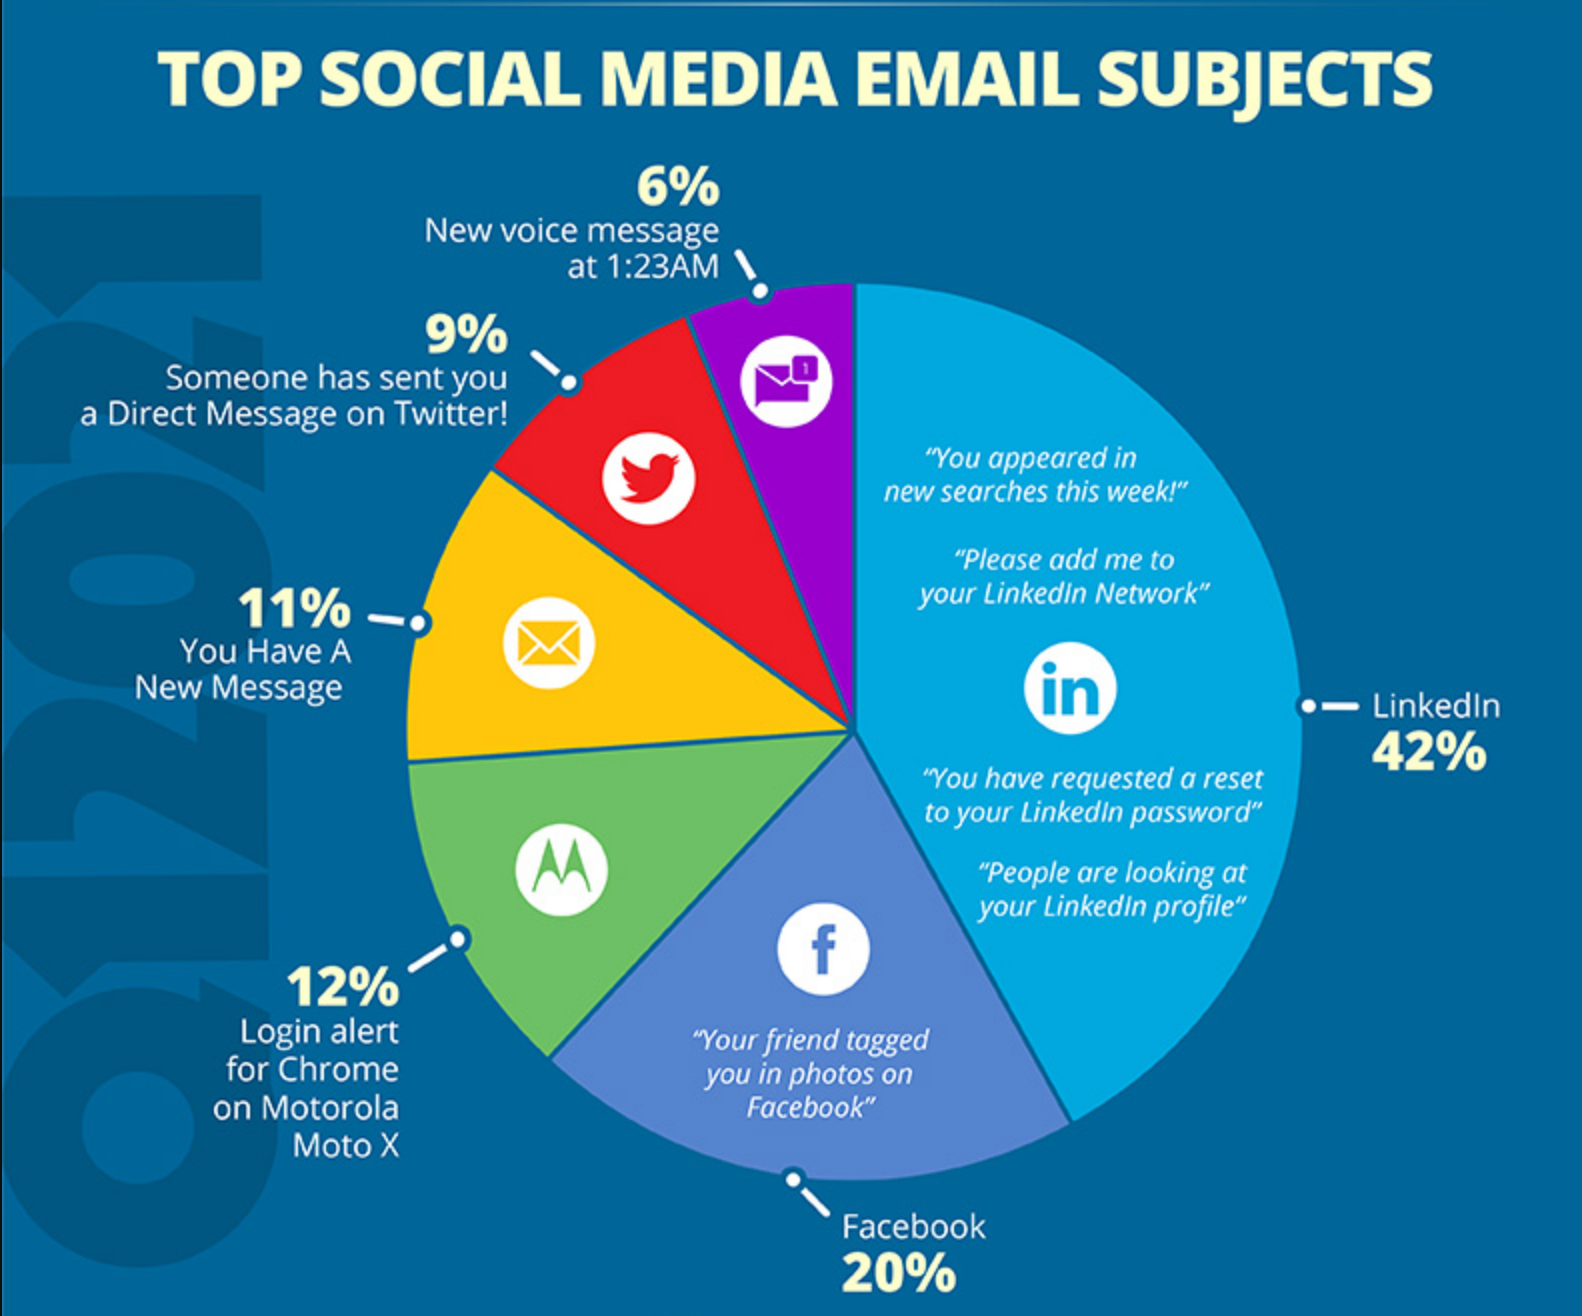 Top Social Media Phishing Email Subjects